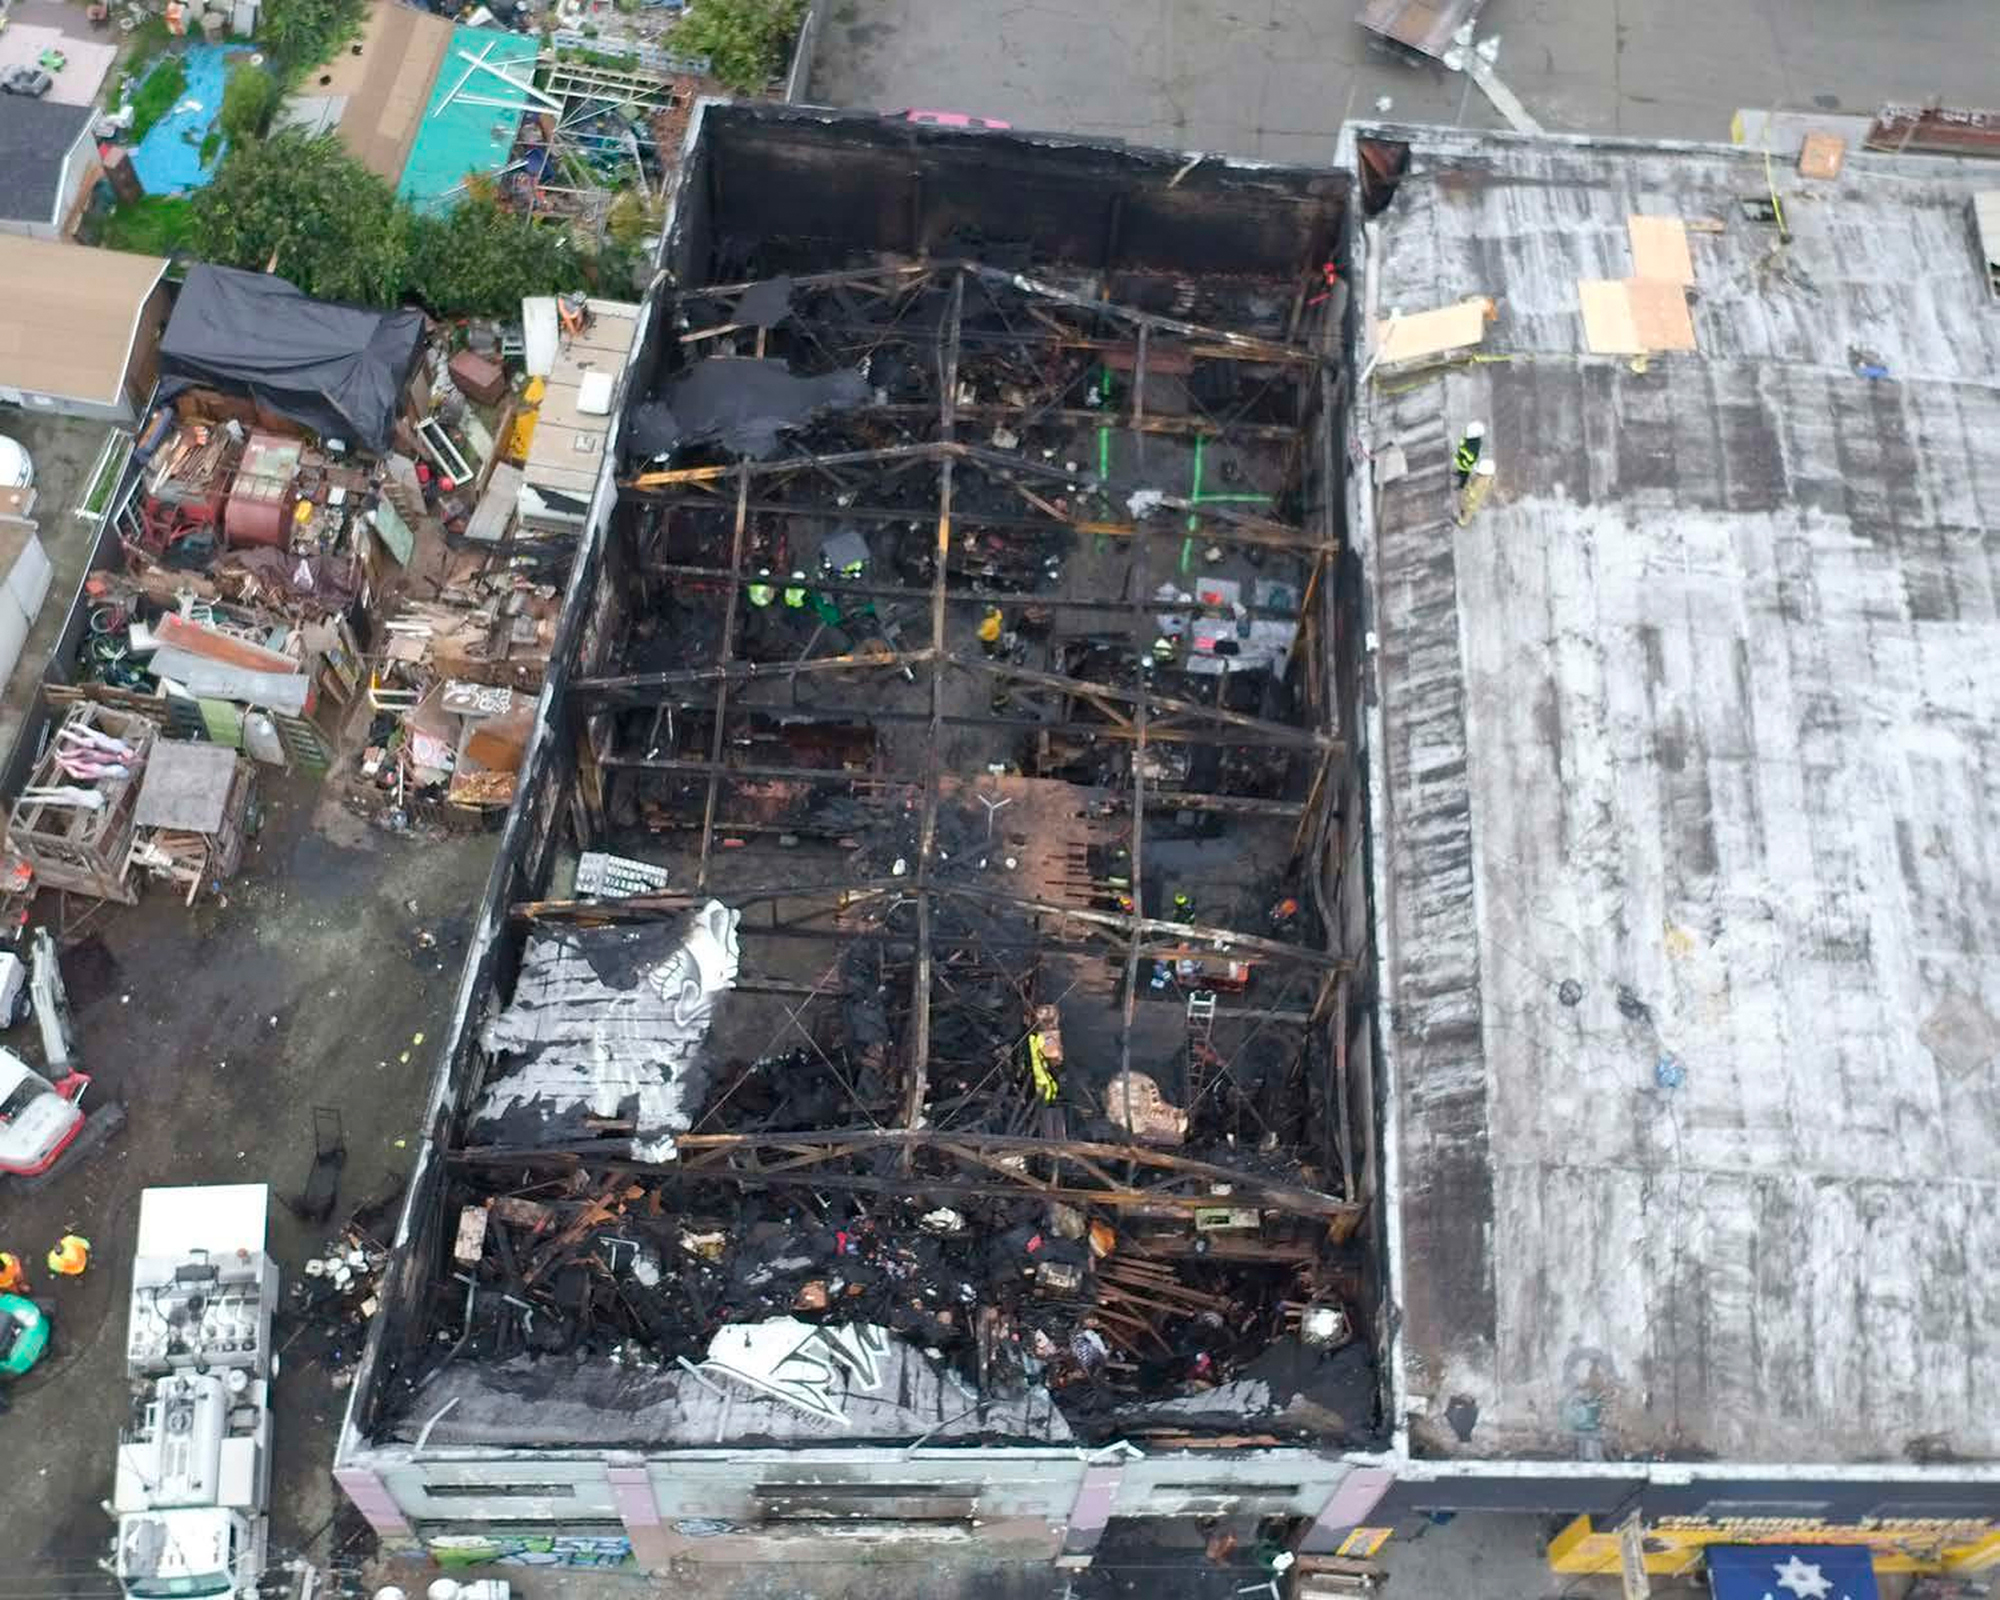 'Ghost Ship' leaseholder pleads guilty in connection to blaze that killed 36